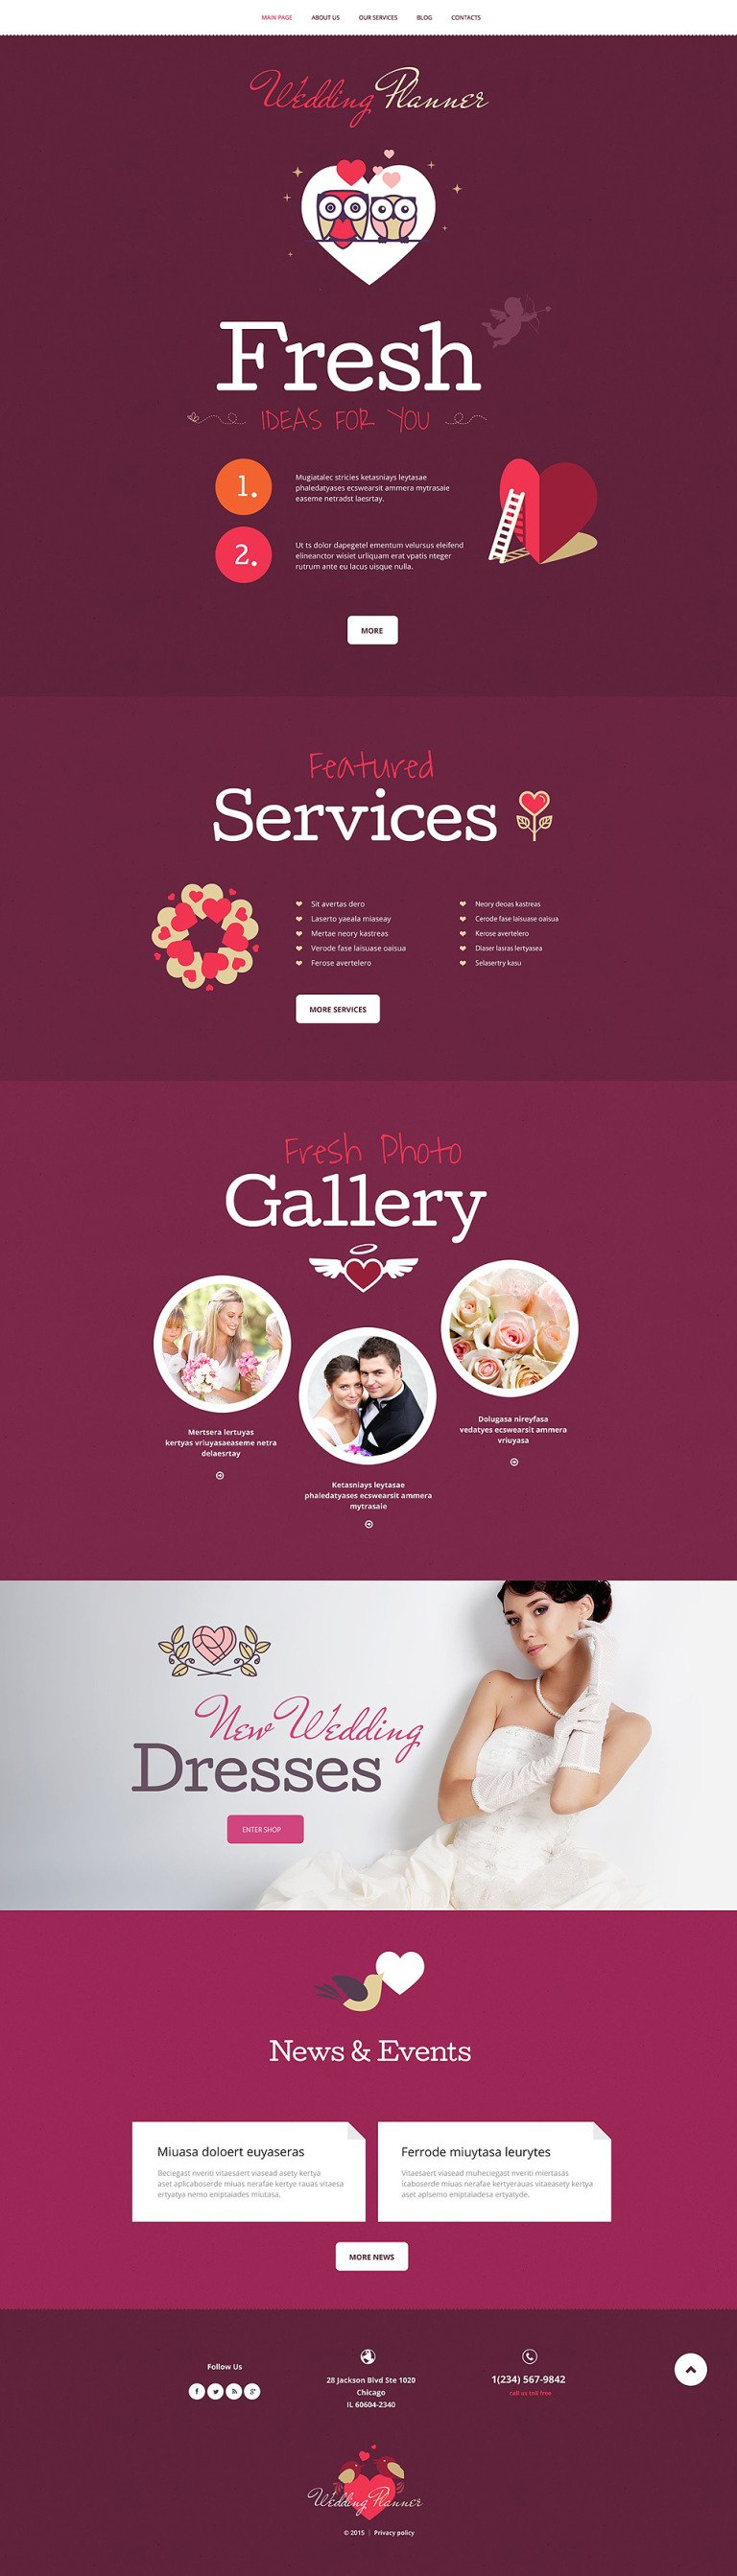 Wedding Planner WordPress Theme New Screenshots BIG